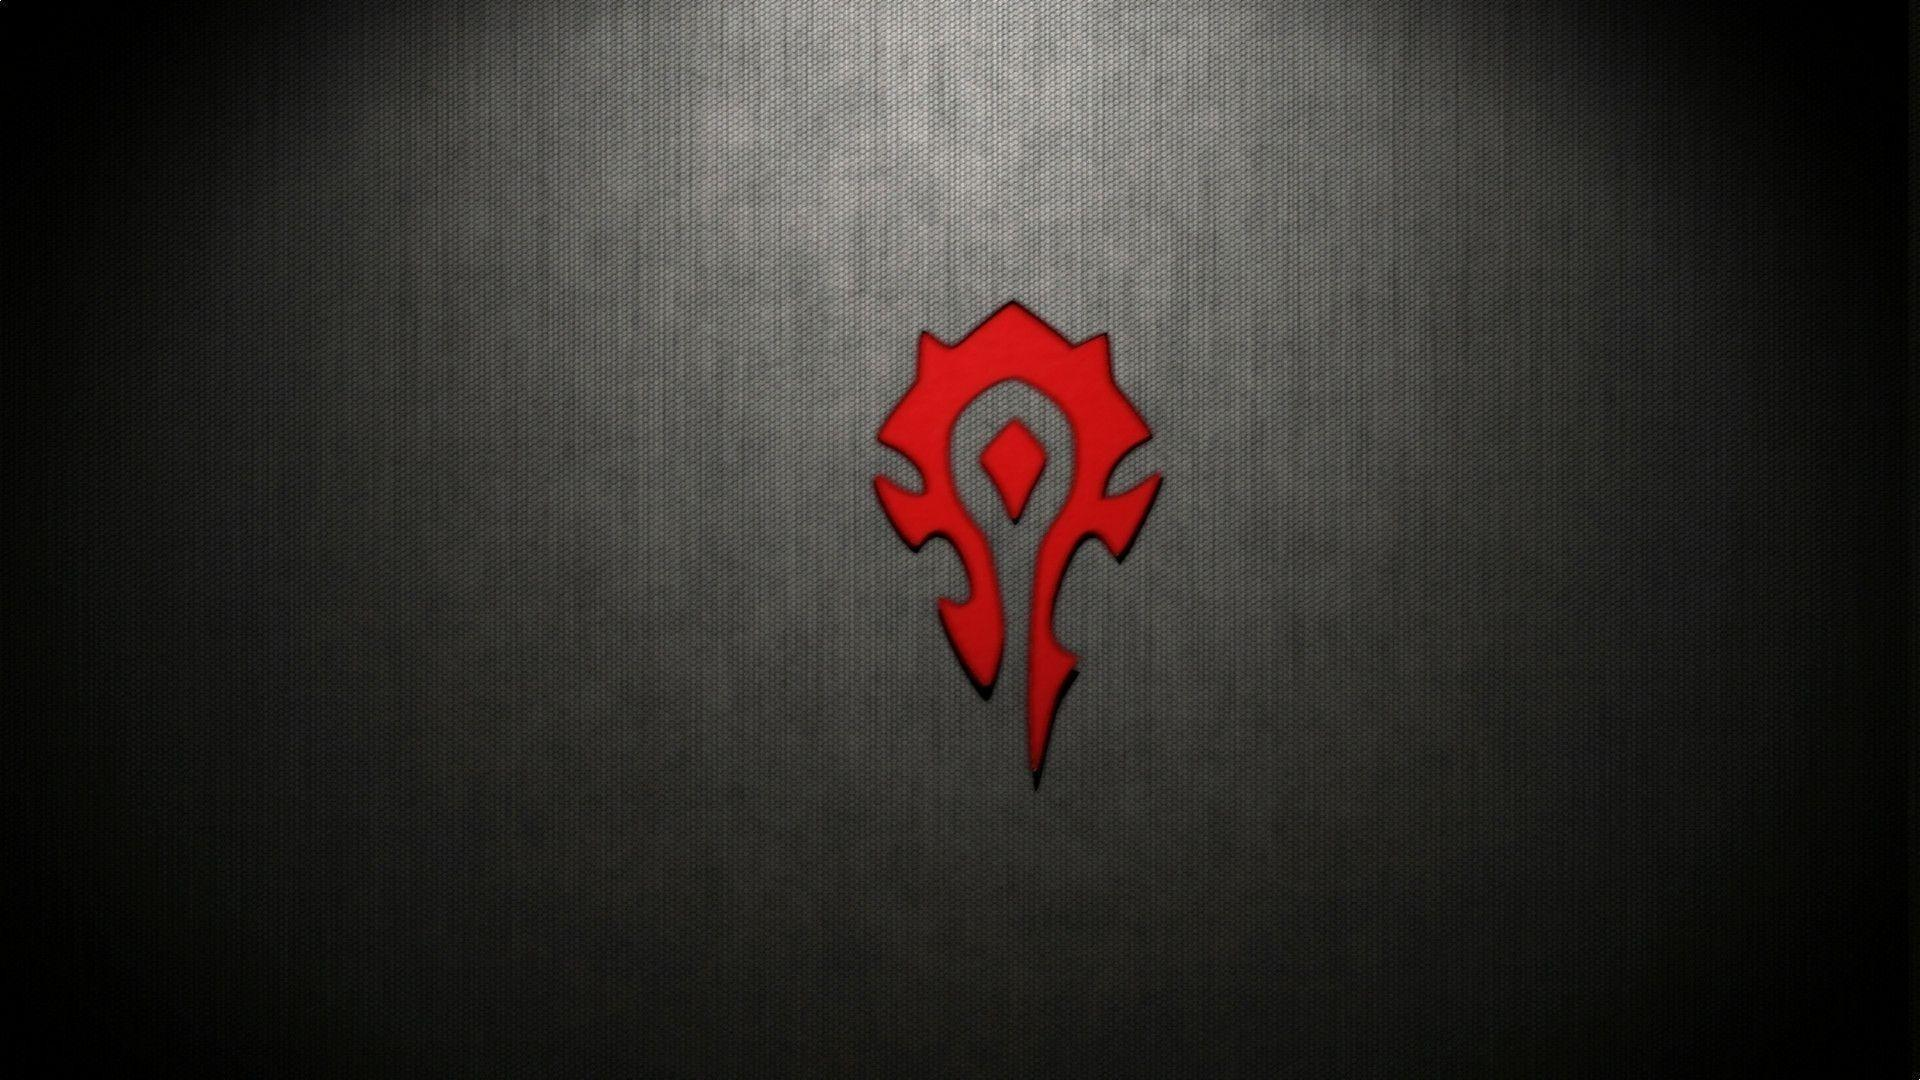 Download Horde Logo Wallpaper Hd Backgrounds Download Itlcat